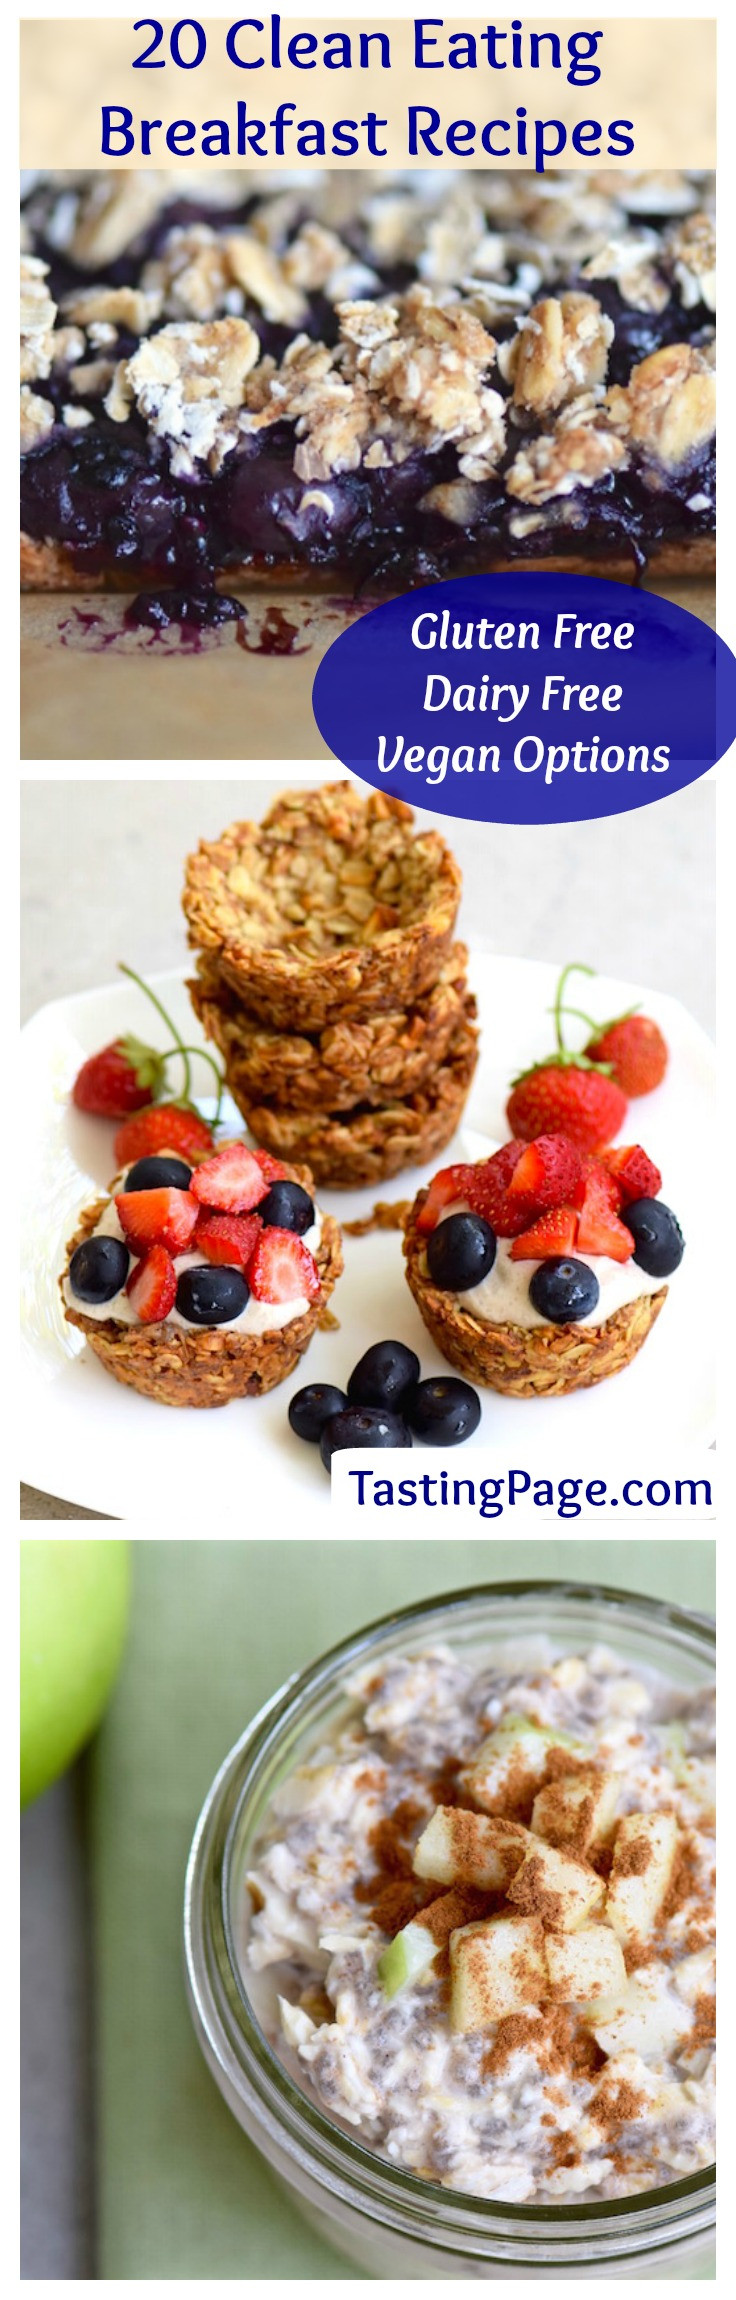 Clean Eating Breakfast Recipe  20 Clean Eating Breakfast Recipes — Tasting Page